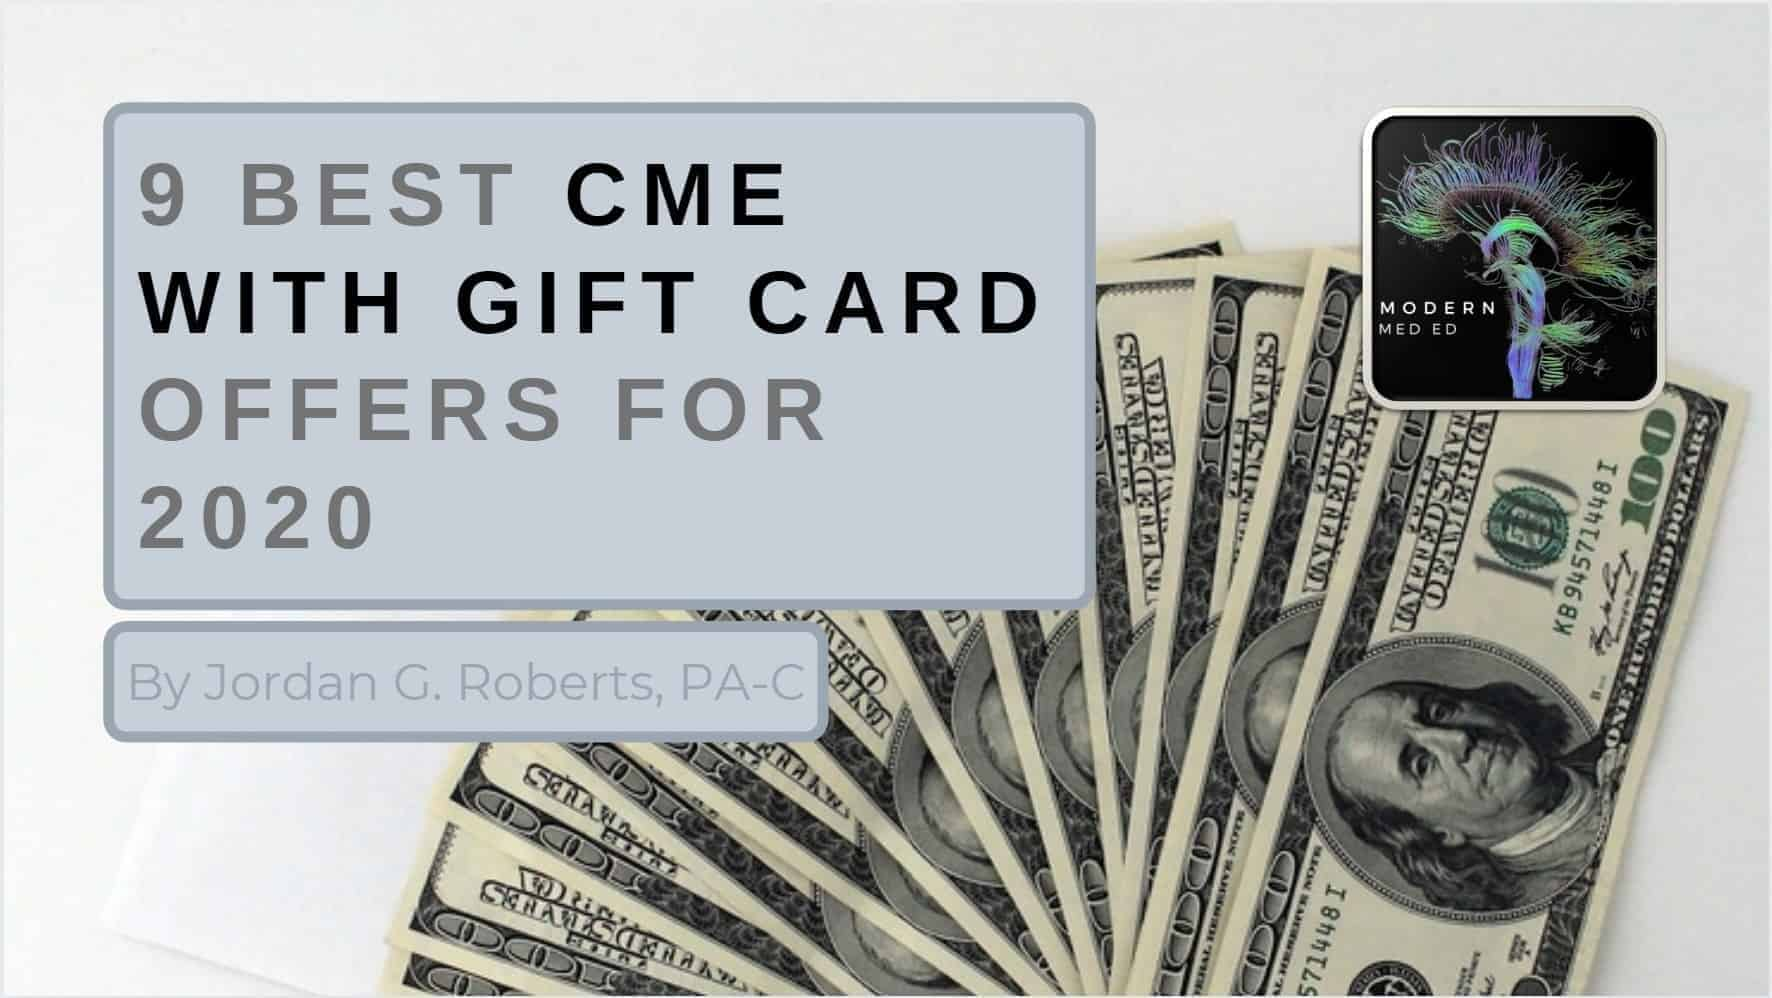 Best CME Gift Card Offers for 2020